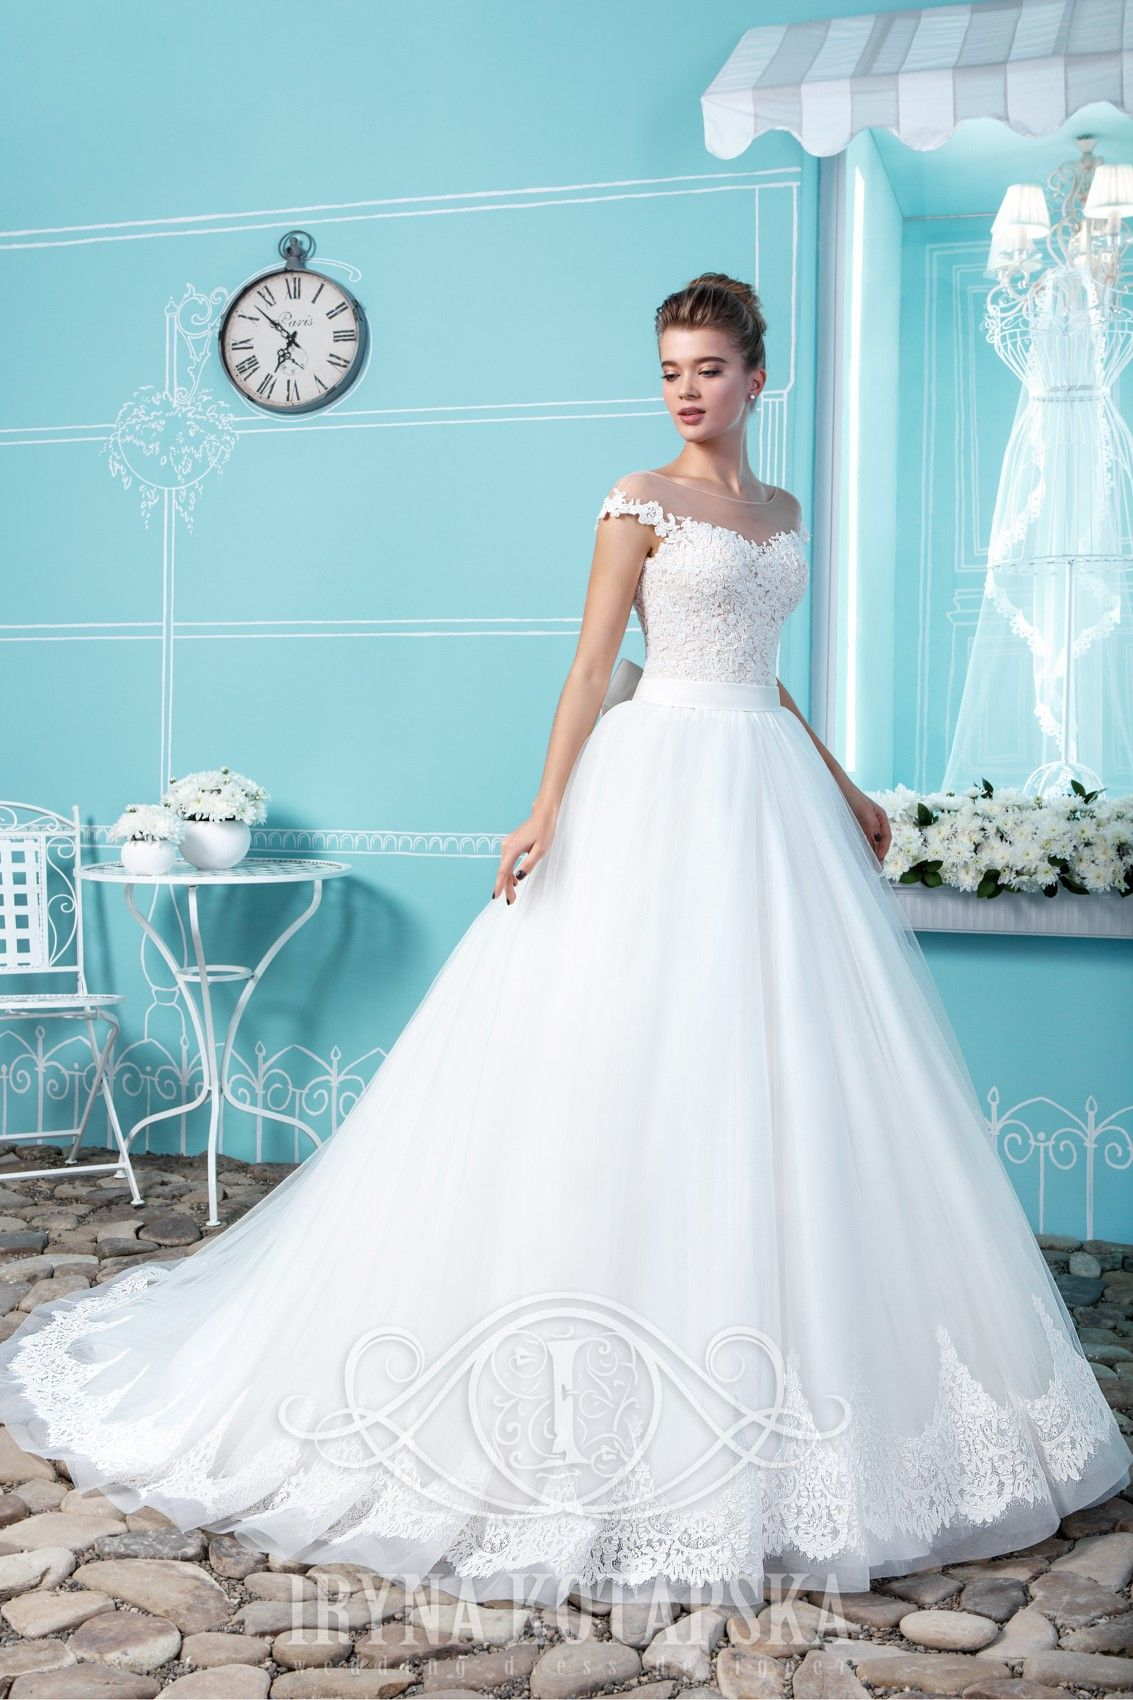 Perfect Lady Edith Wedding Dress Sketch - Womens Dresses & Gowns ...